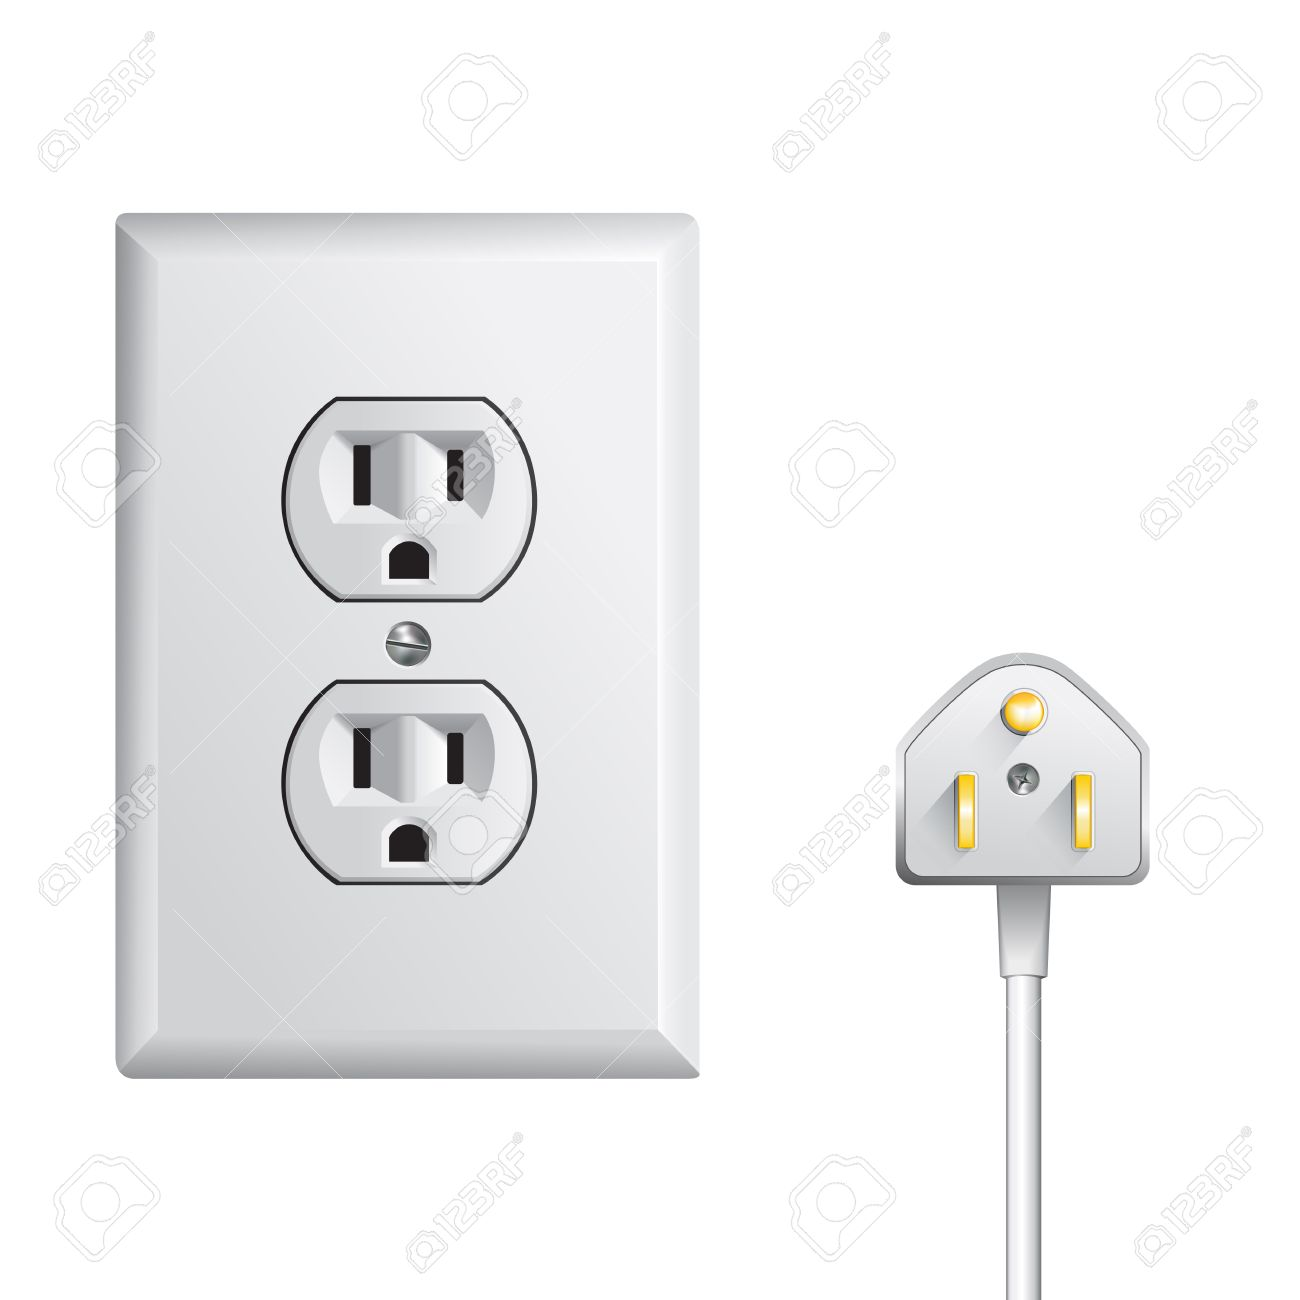 Electrical Outlet Stock Photos. Royalty Free Electrical Outlet Images